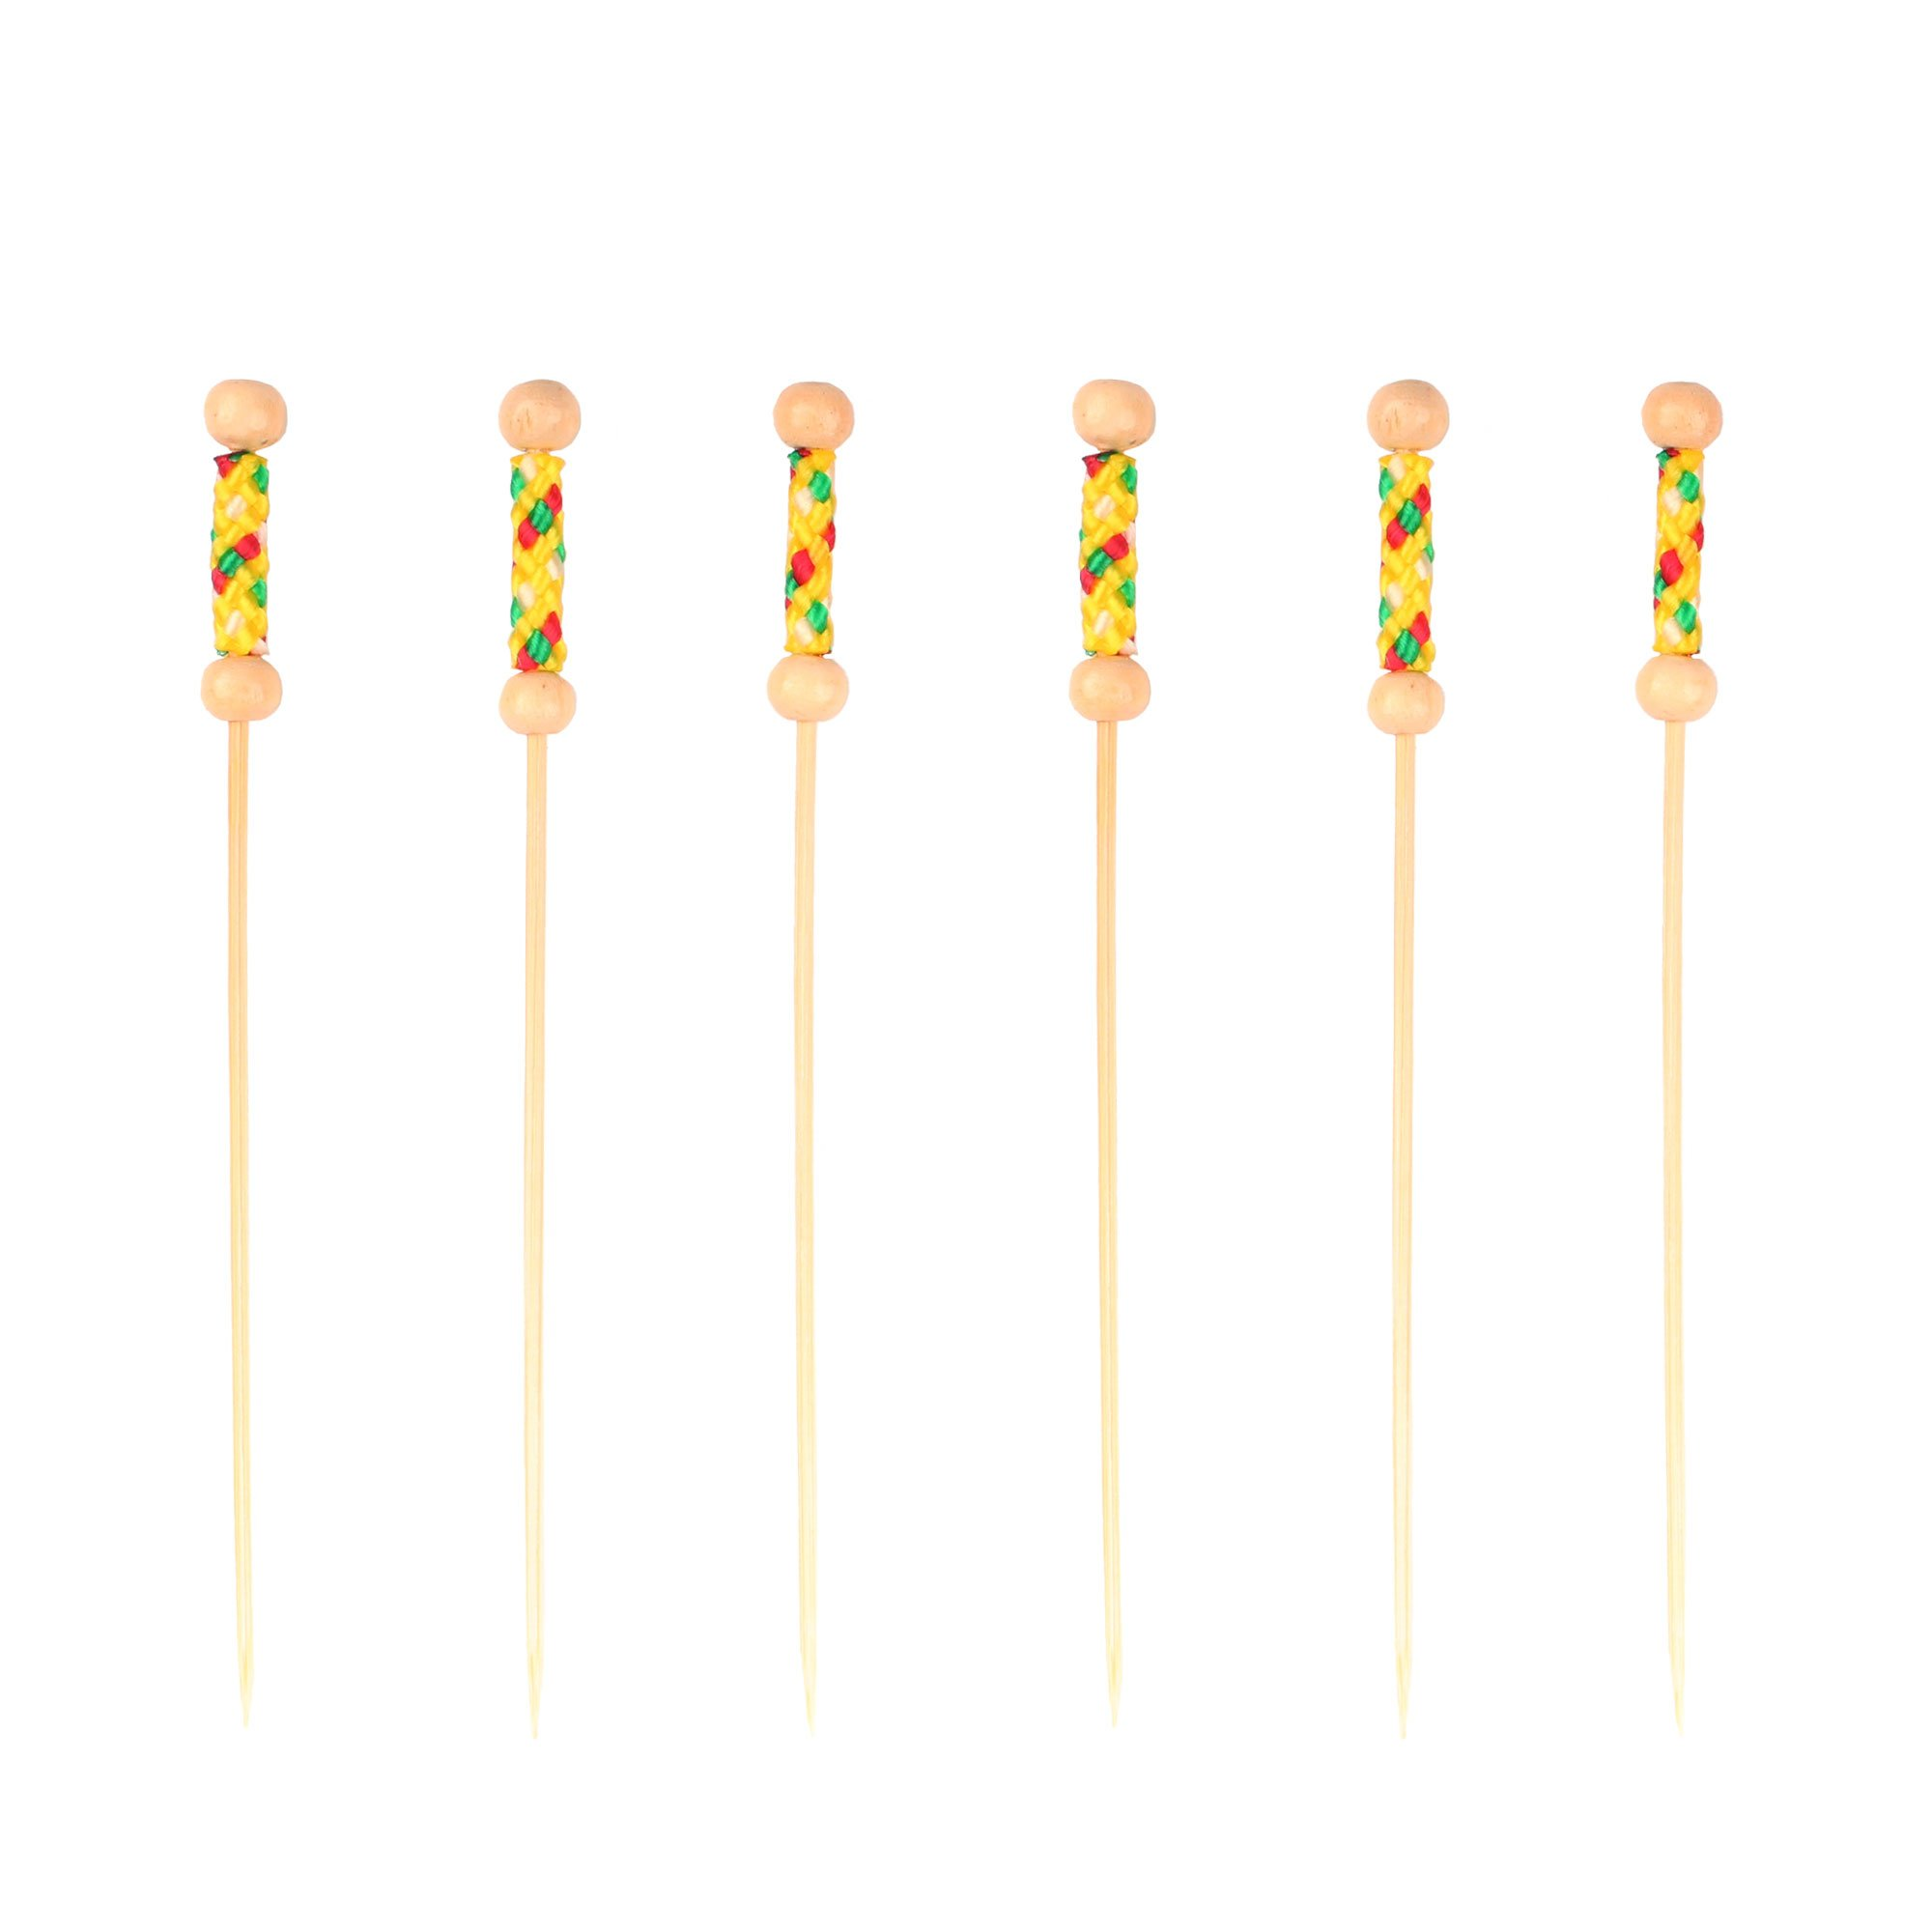 BambooMN 3.9'' Decorative Bamboo Bright Yellow Braided String Cocktail Fruit Sandwich Picks Skewers for Catered Events, Holiday's, Restaurants or Buffets Party Supplies, 1,000 Pieces